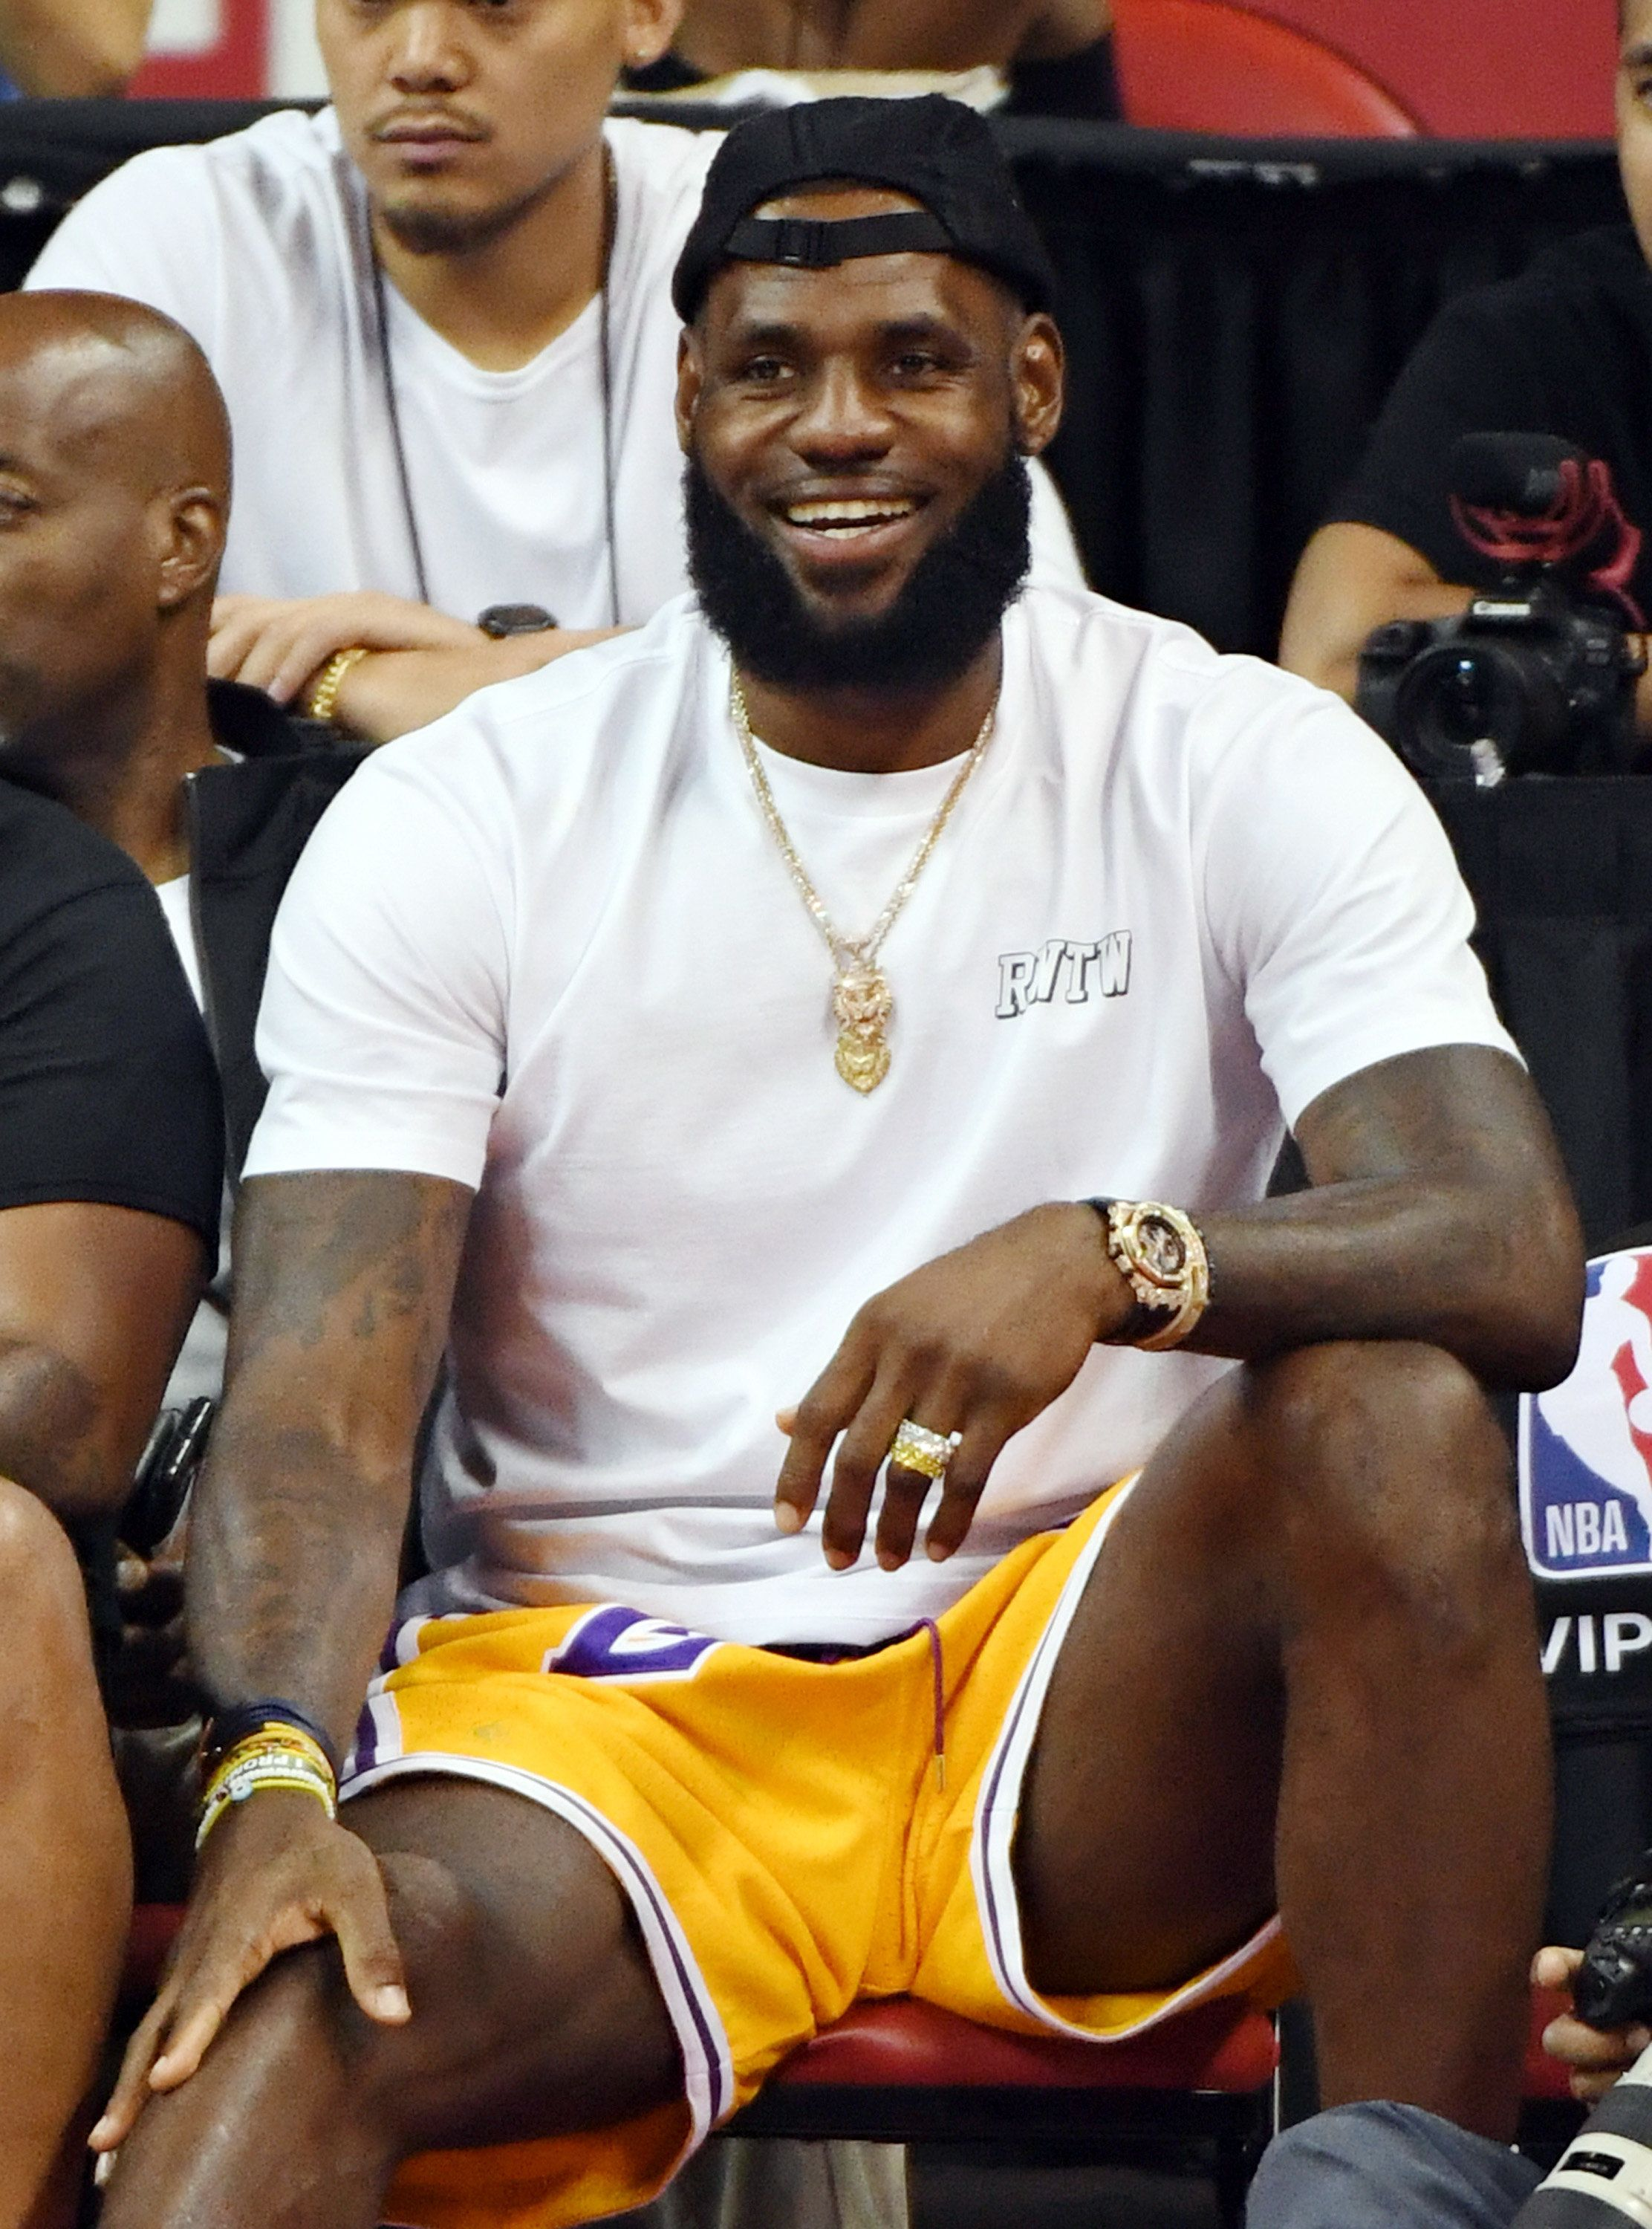 LeBron James Opens I Promise School For Akron's At-Risk